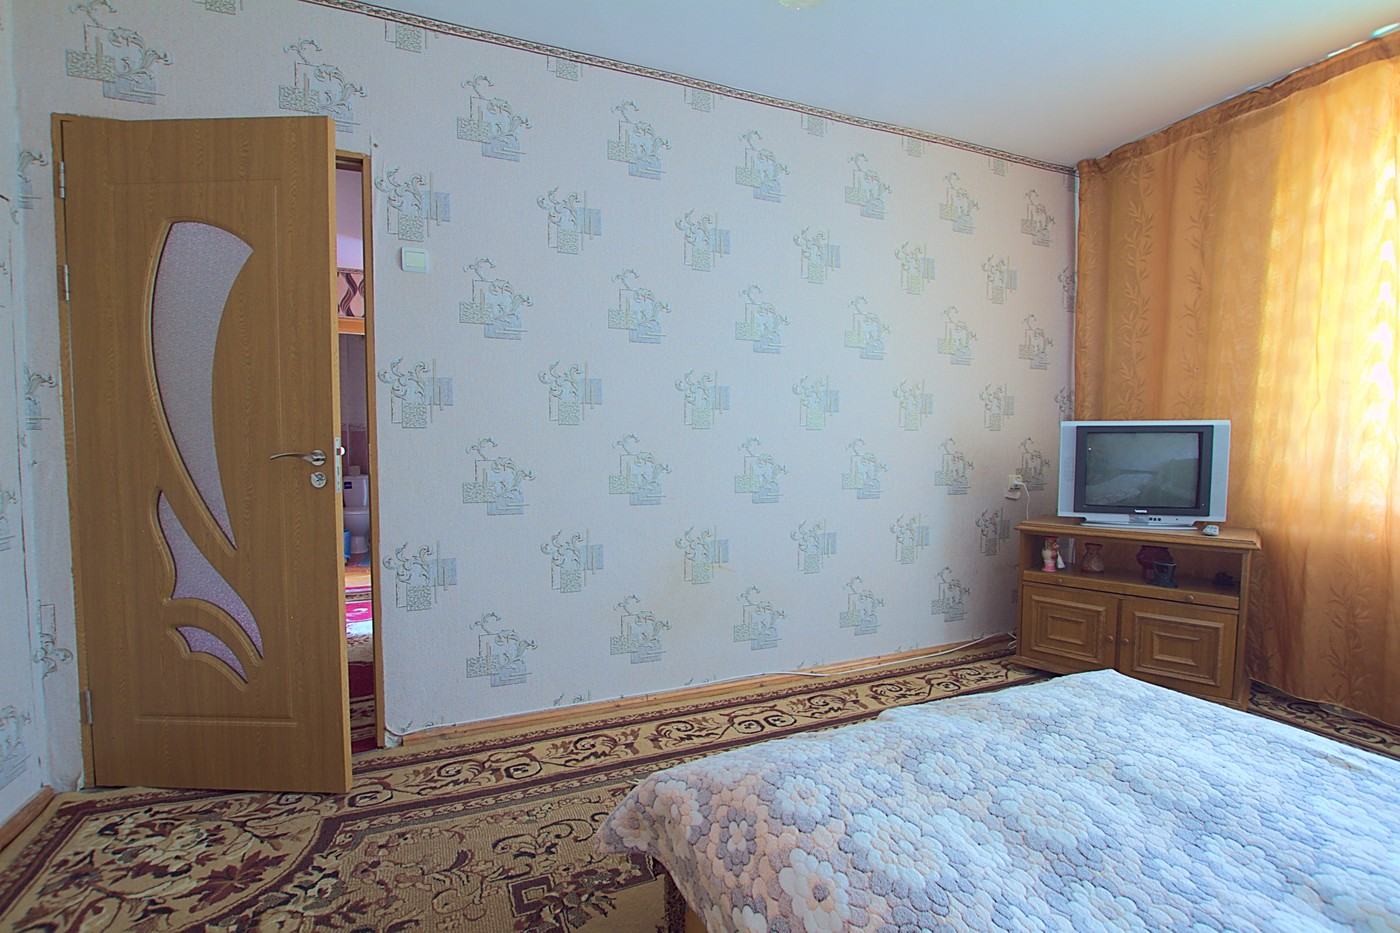 Cheap_rent_apartmet_Chisinau_Riscani_1.jpg